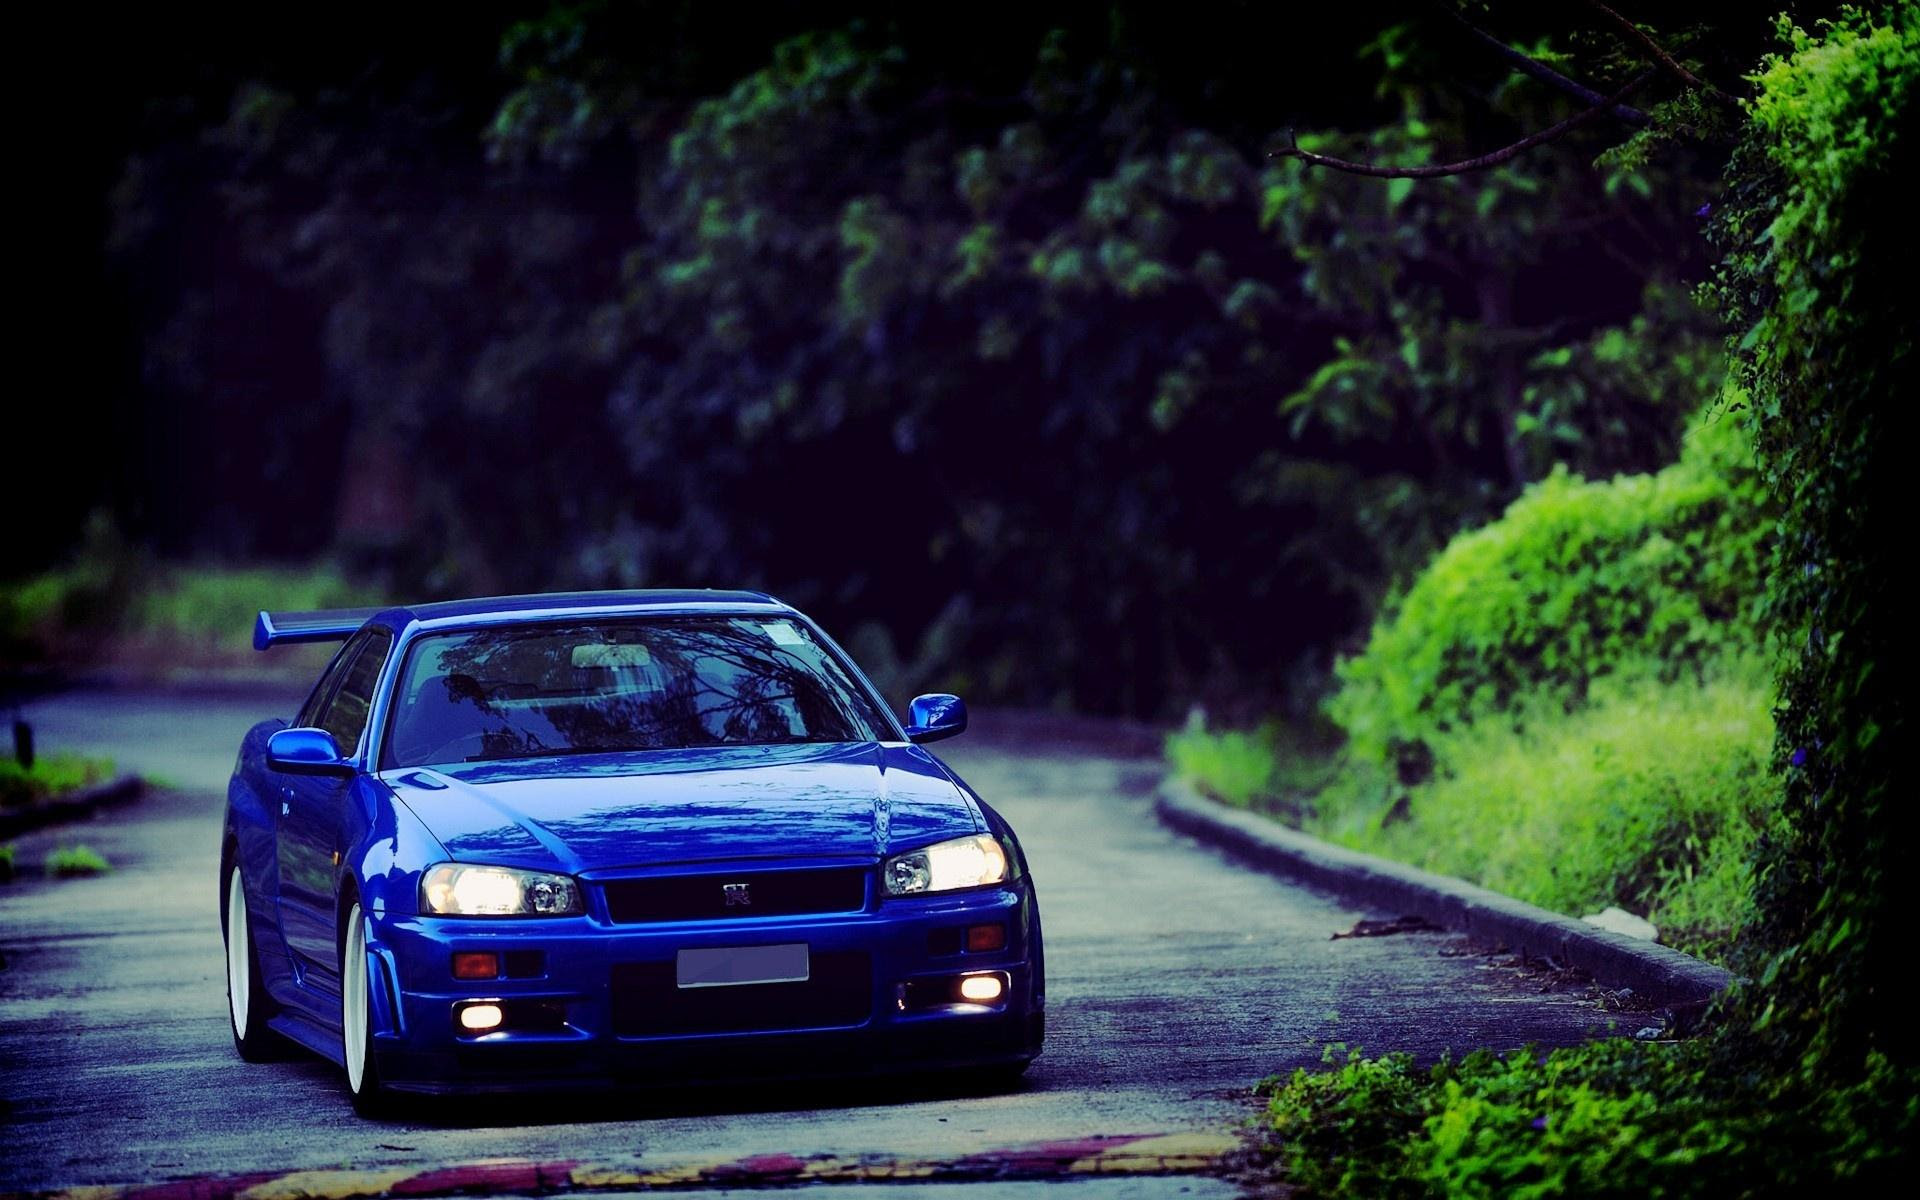 R34 Wallpaper Sf Wallpaper